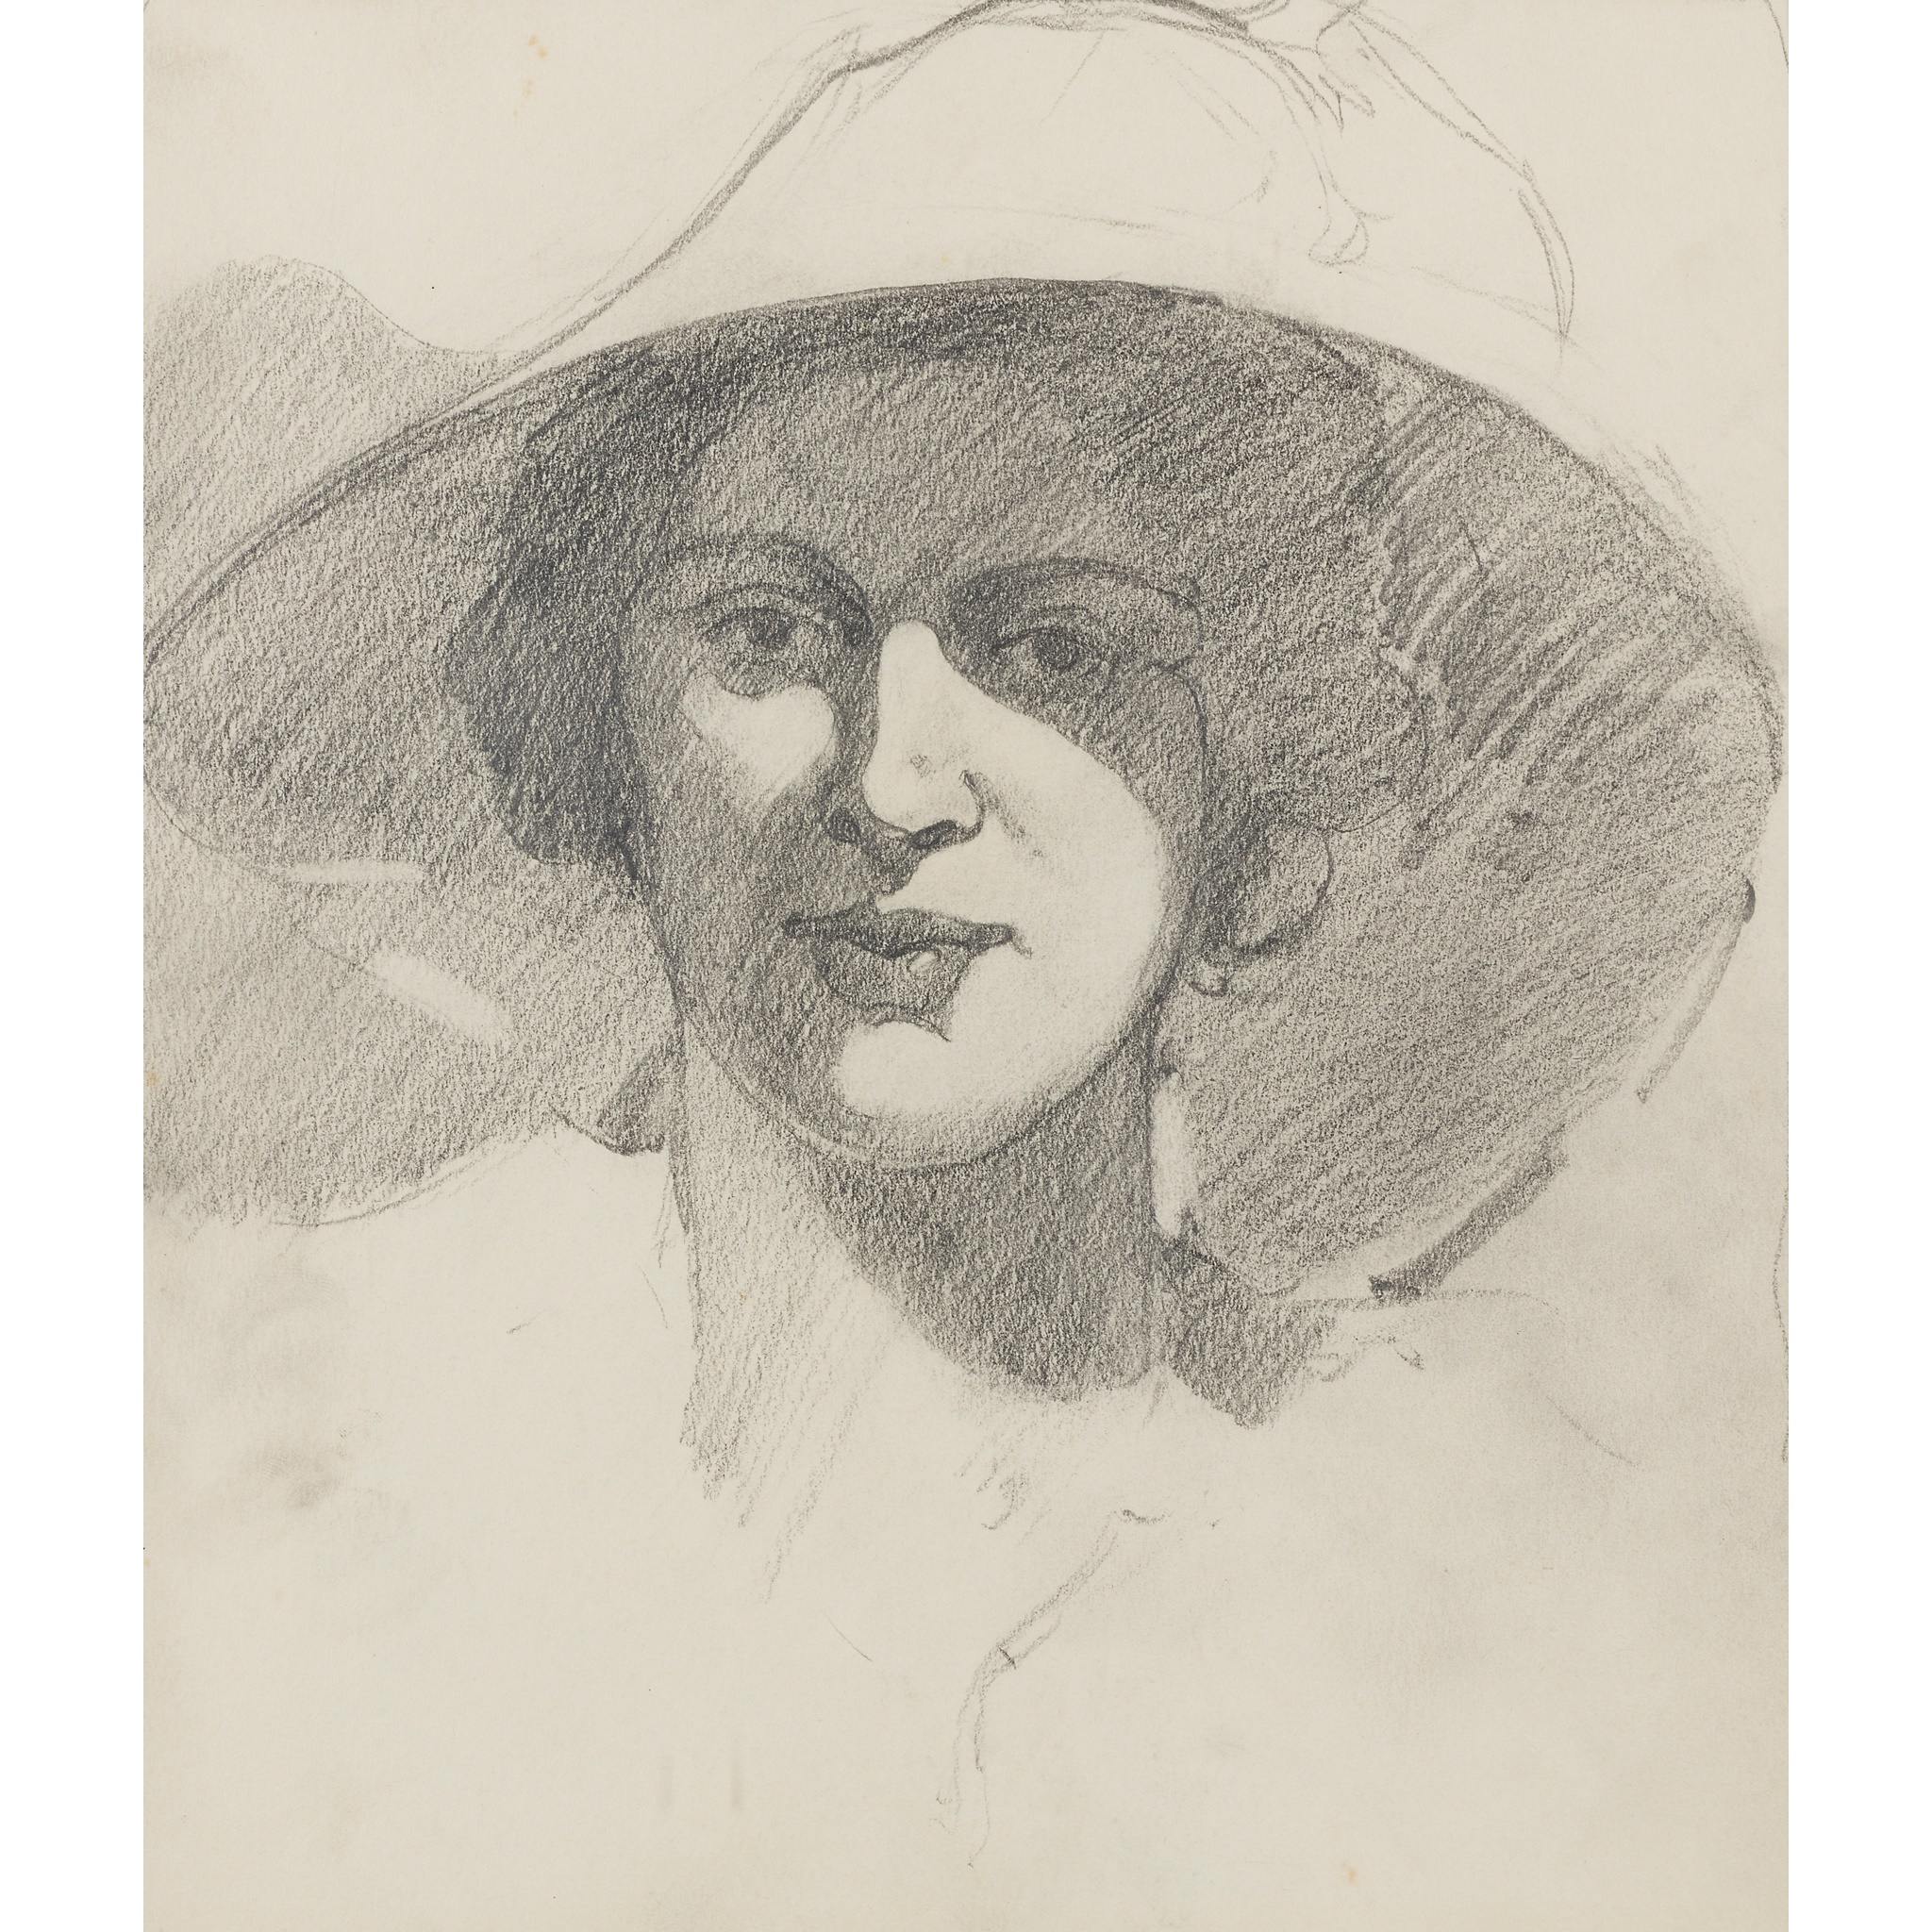 LOT 18 | § JOHN DUNCAN FERGUSSON R.B.A. (SCOTTISH 1874-1961) | WOMAN IN A LARGE HAT Pencil | 27cm x 23cm (10.5in x 9in) | Exhibited: Alexander Meddowes, J.D. Fergusson - Unseen Works, 2013/14, no.5 £2,000 - £3,000 + fees